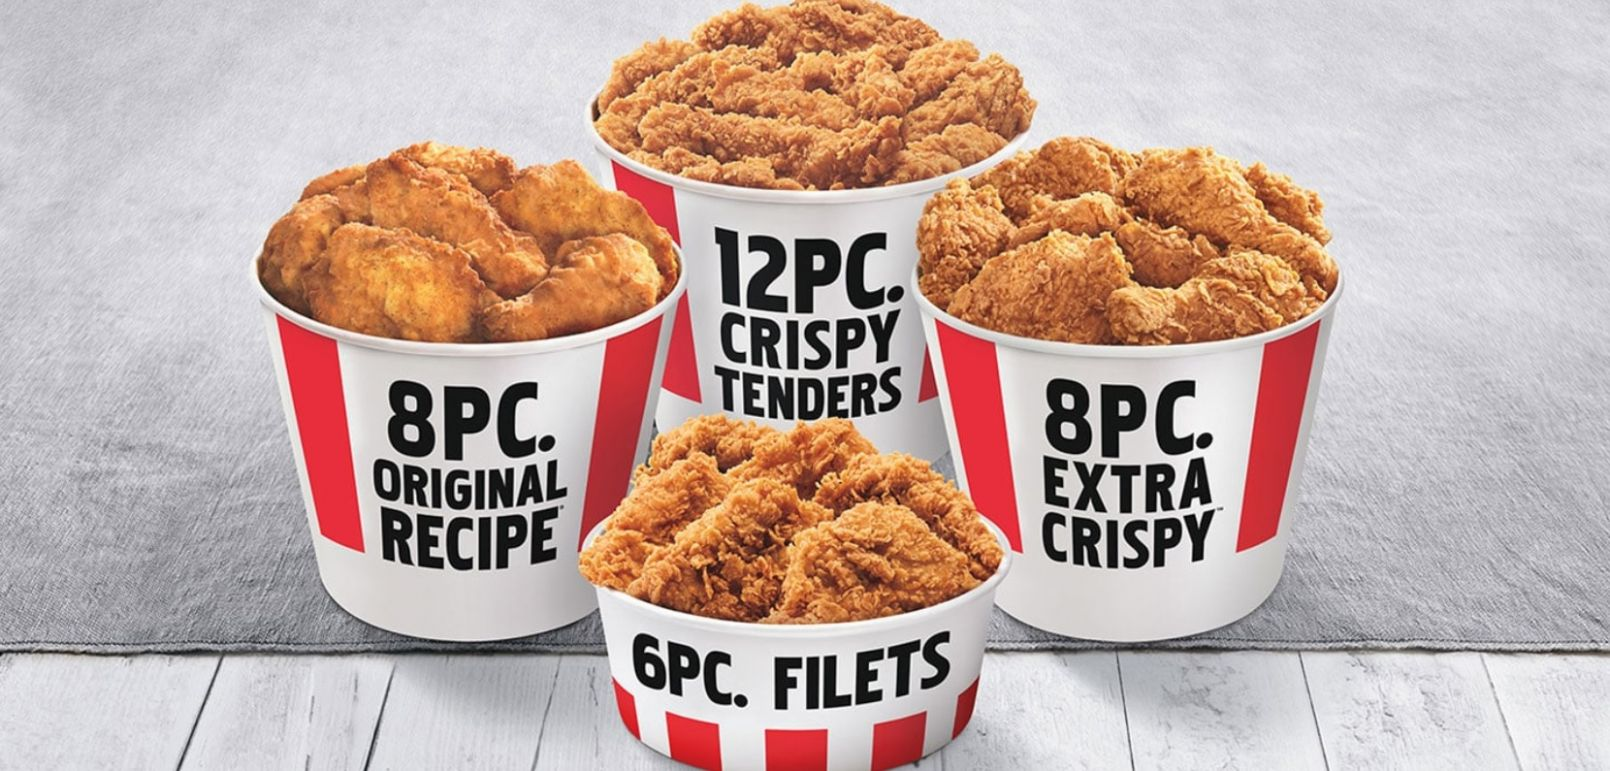 KFC's $11 Fill Up Deal Now Includes 11 Options - The Fast Food Post